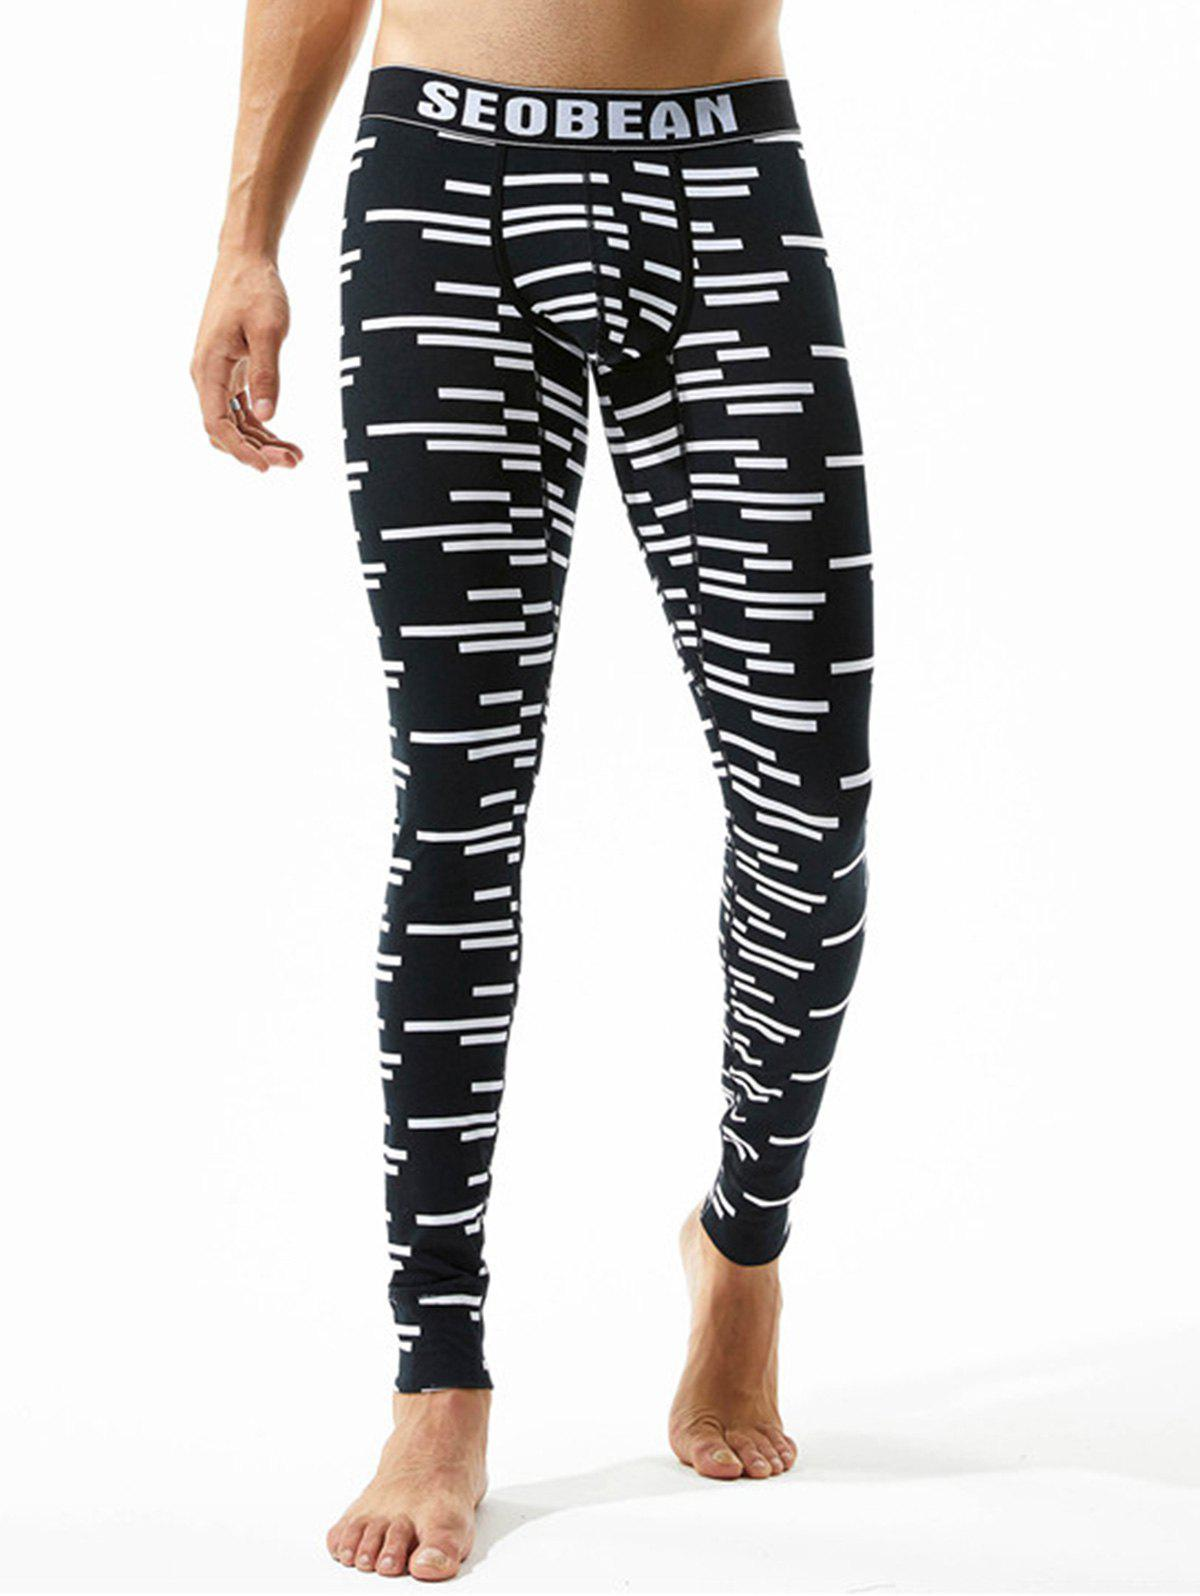 Hot Graphic Stripe Print U Pouch Gym Pants